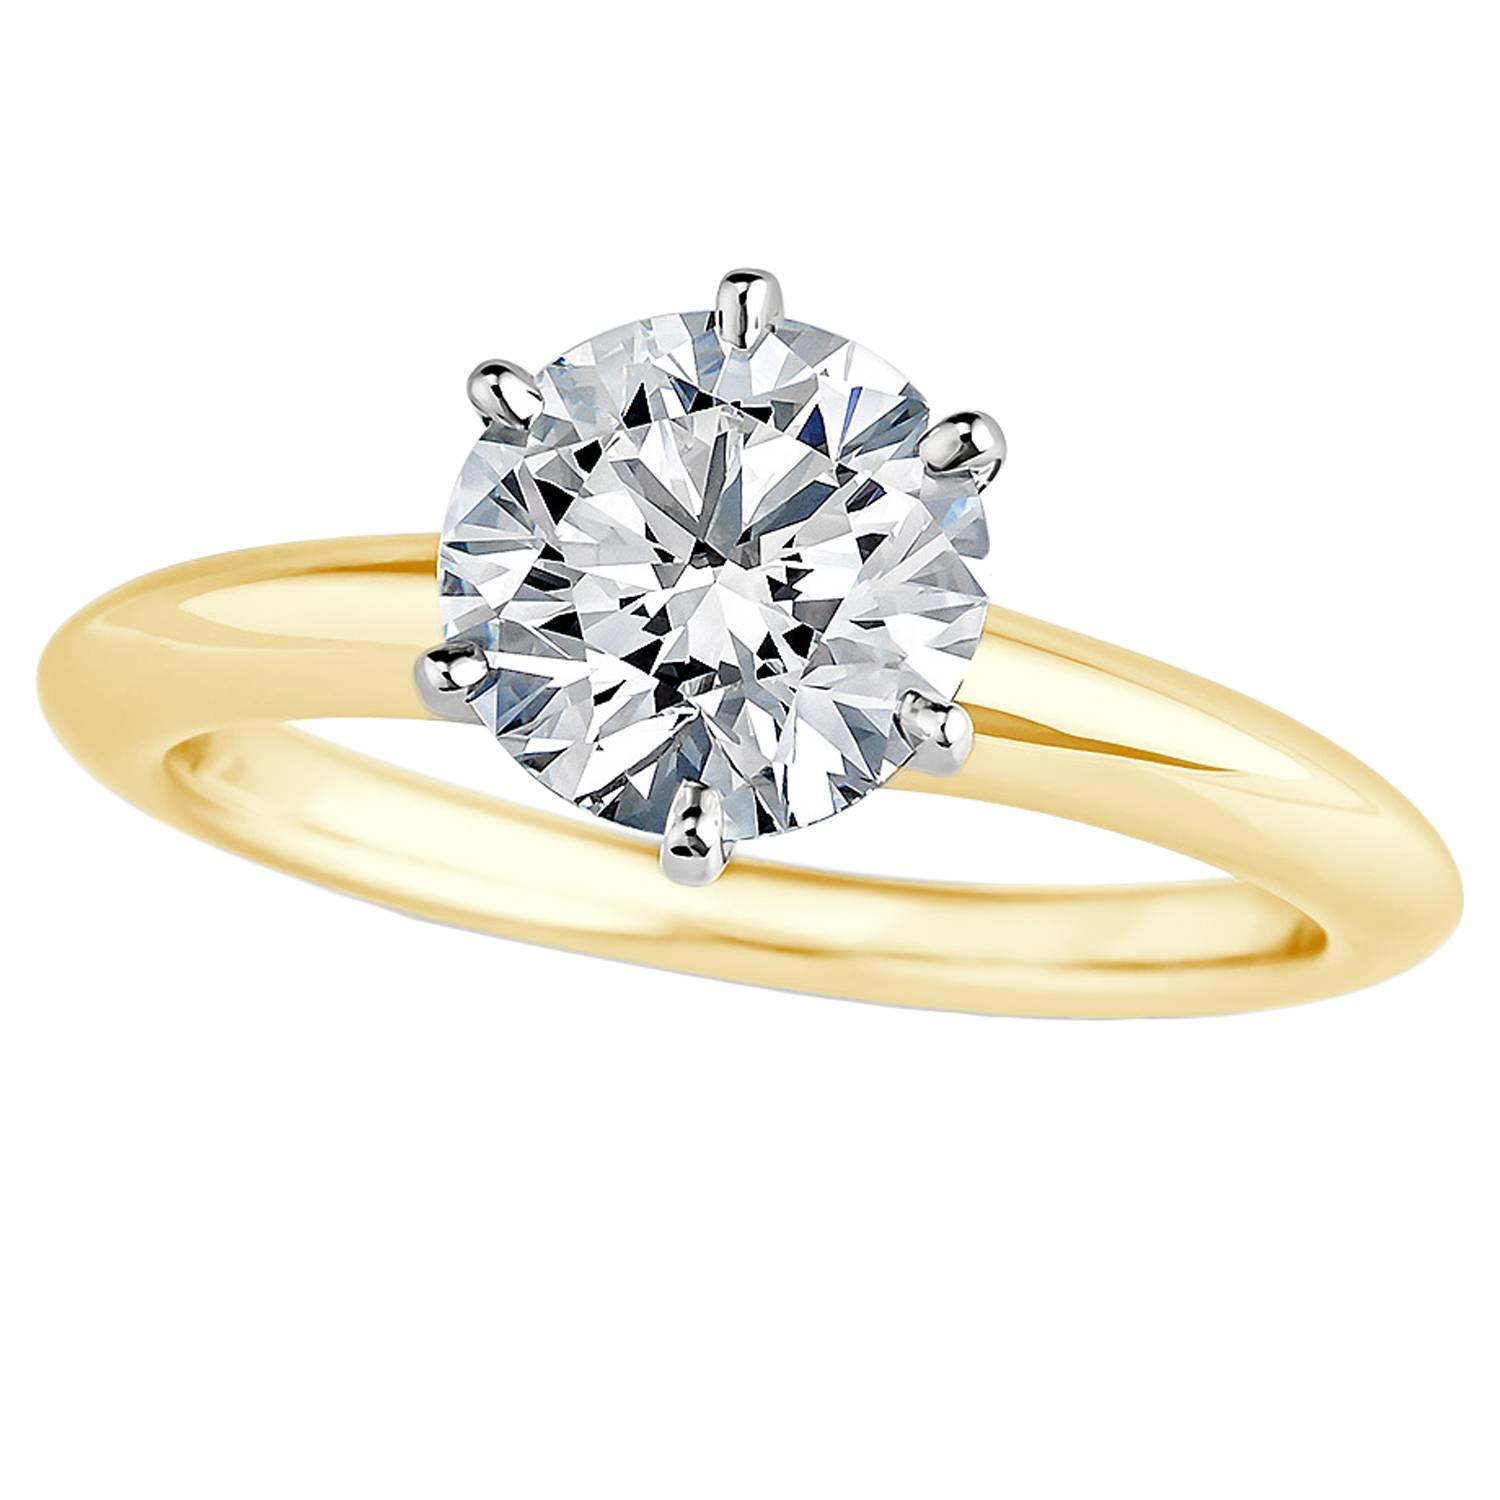 Tiffany and Co 71 Carat Diamond Gold Platinum Engagement Ring at